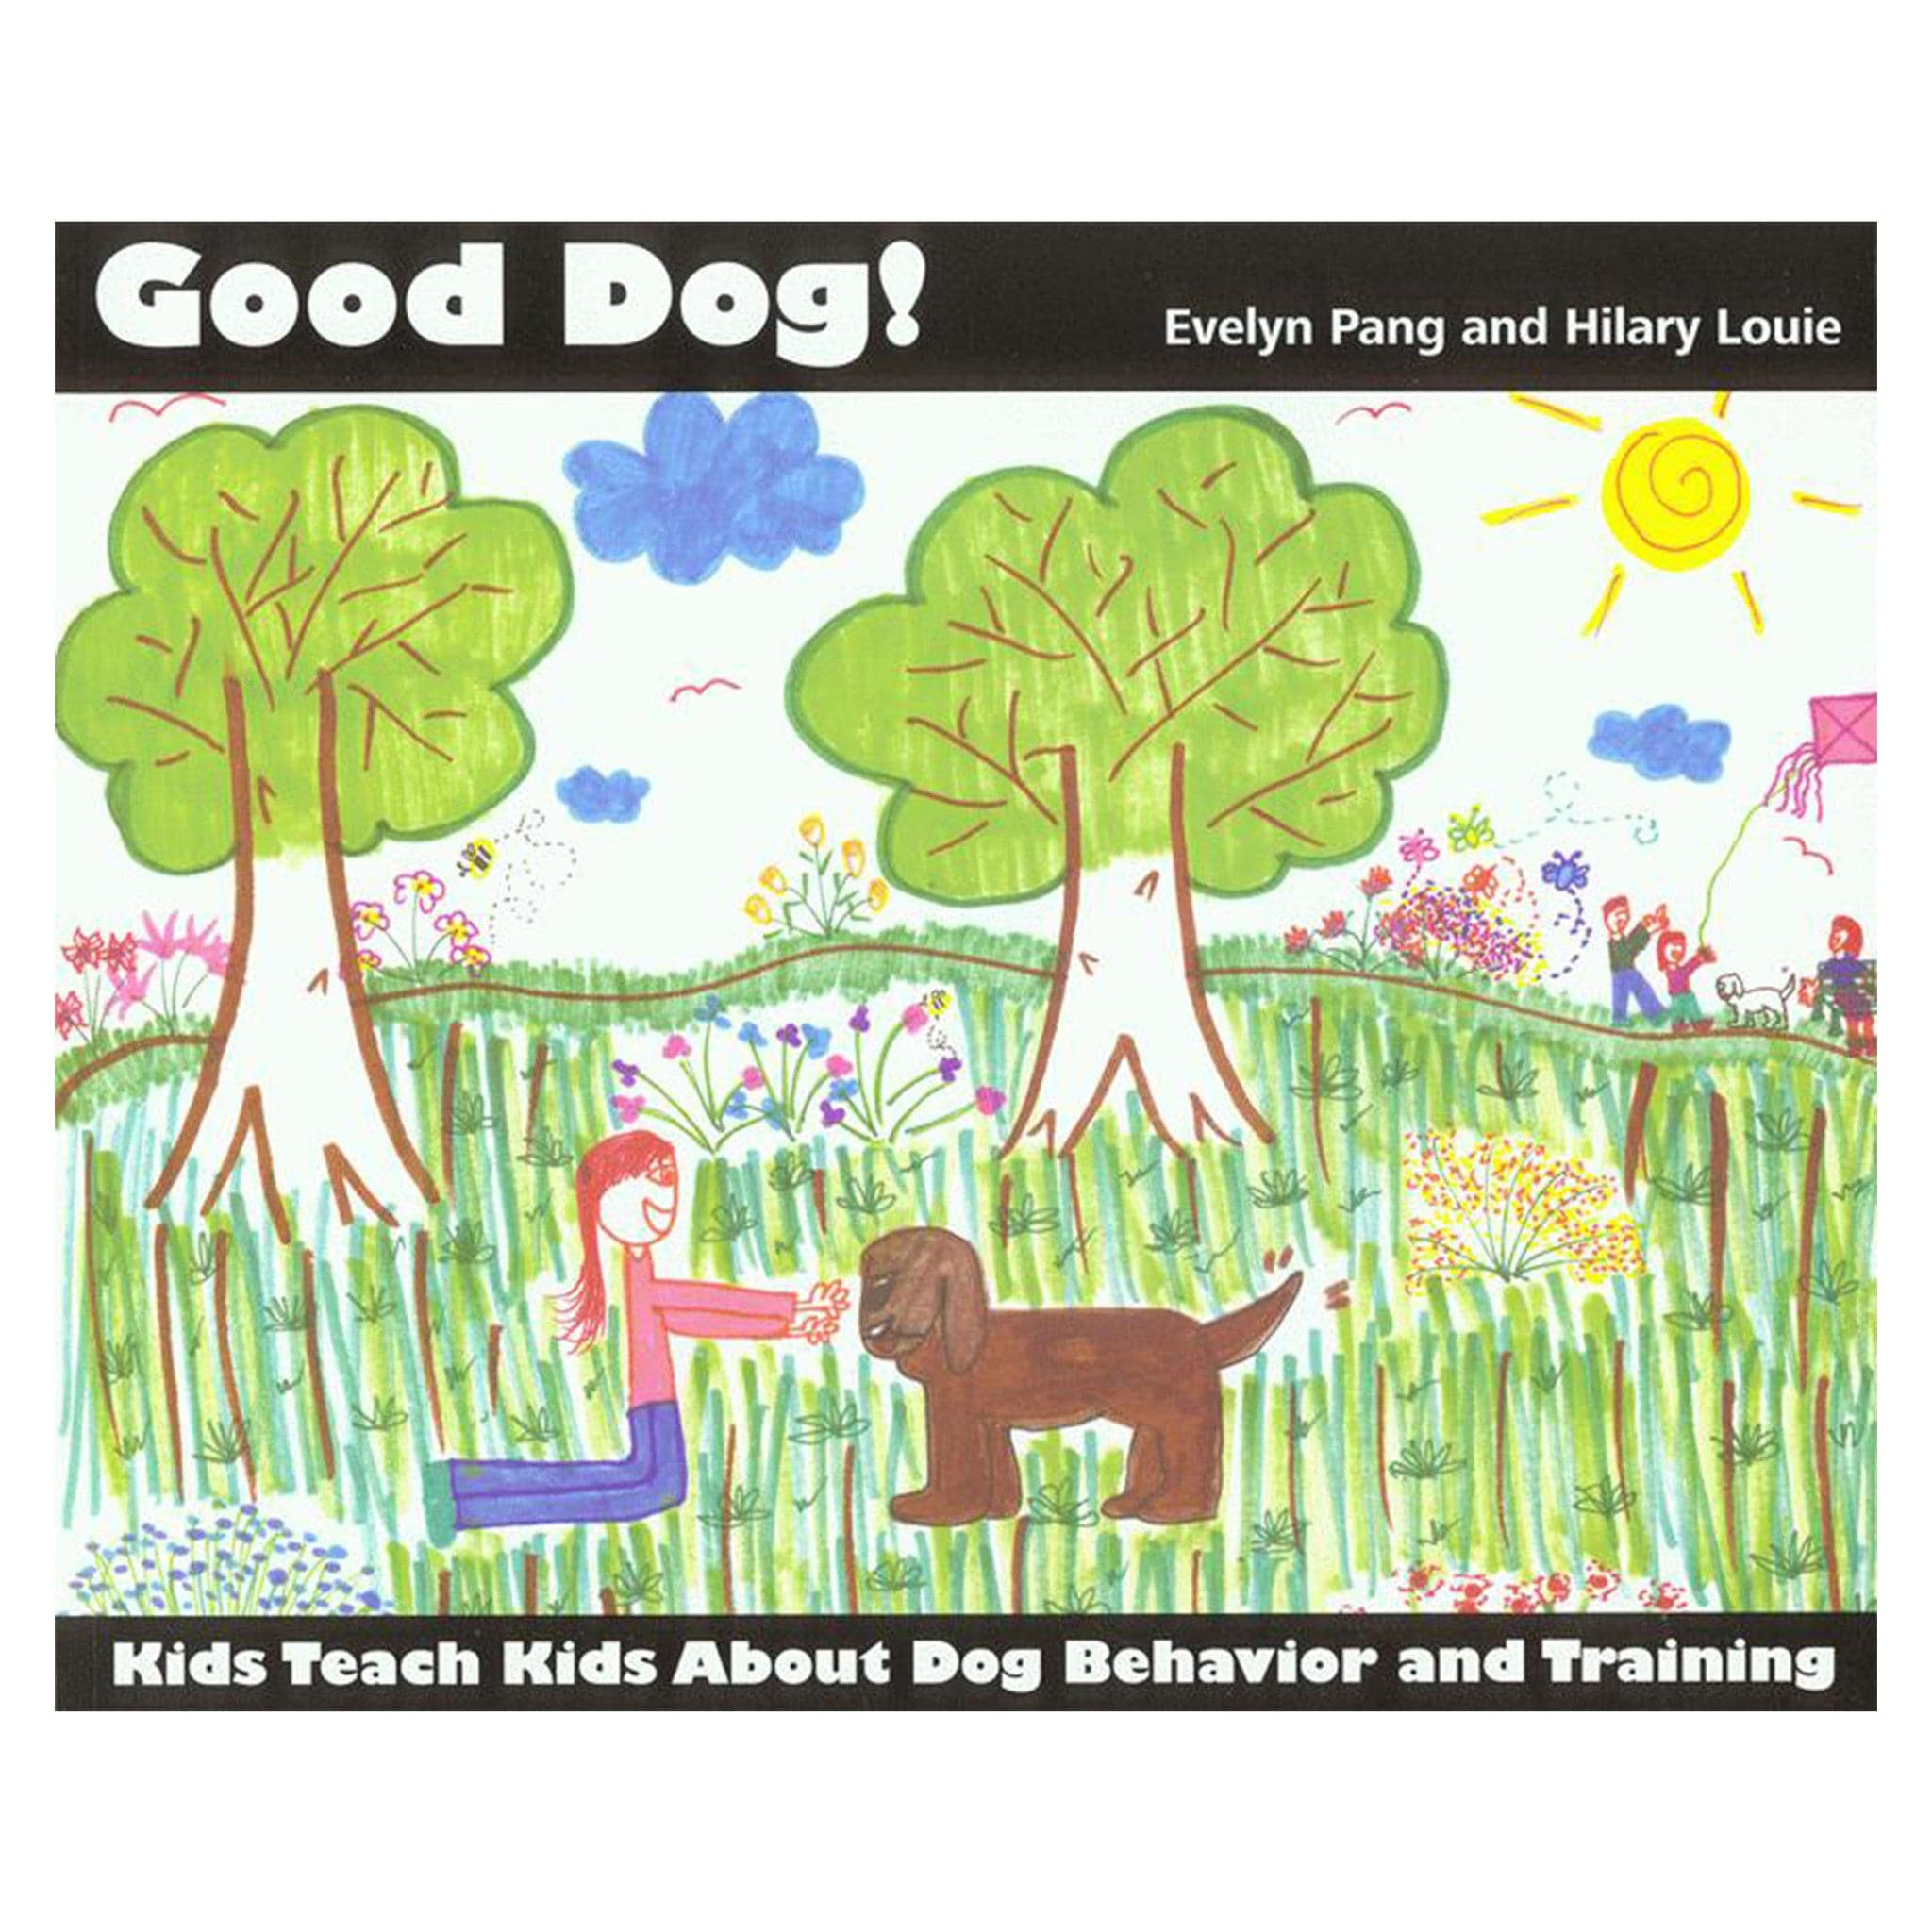 Good Dog! Kids Teach Kids About Dog Behavior and Training